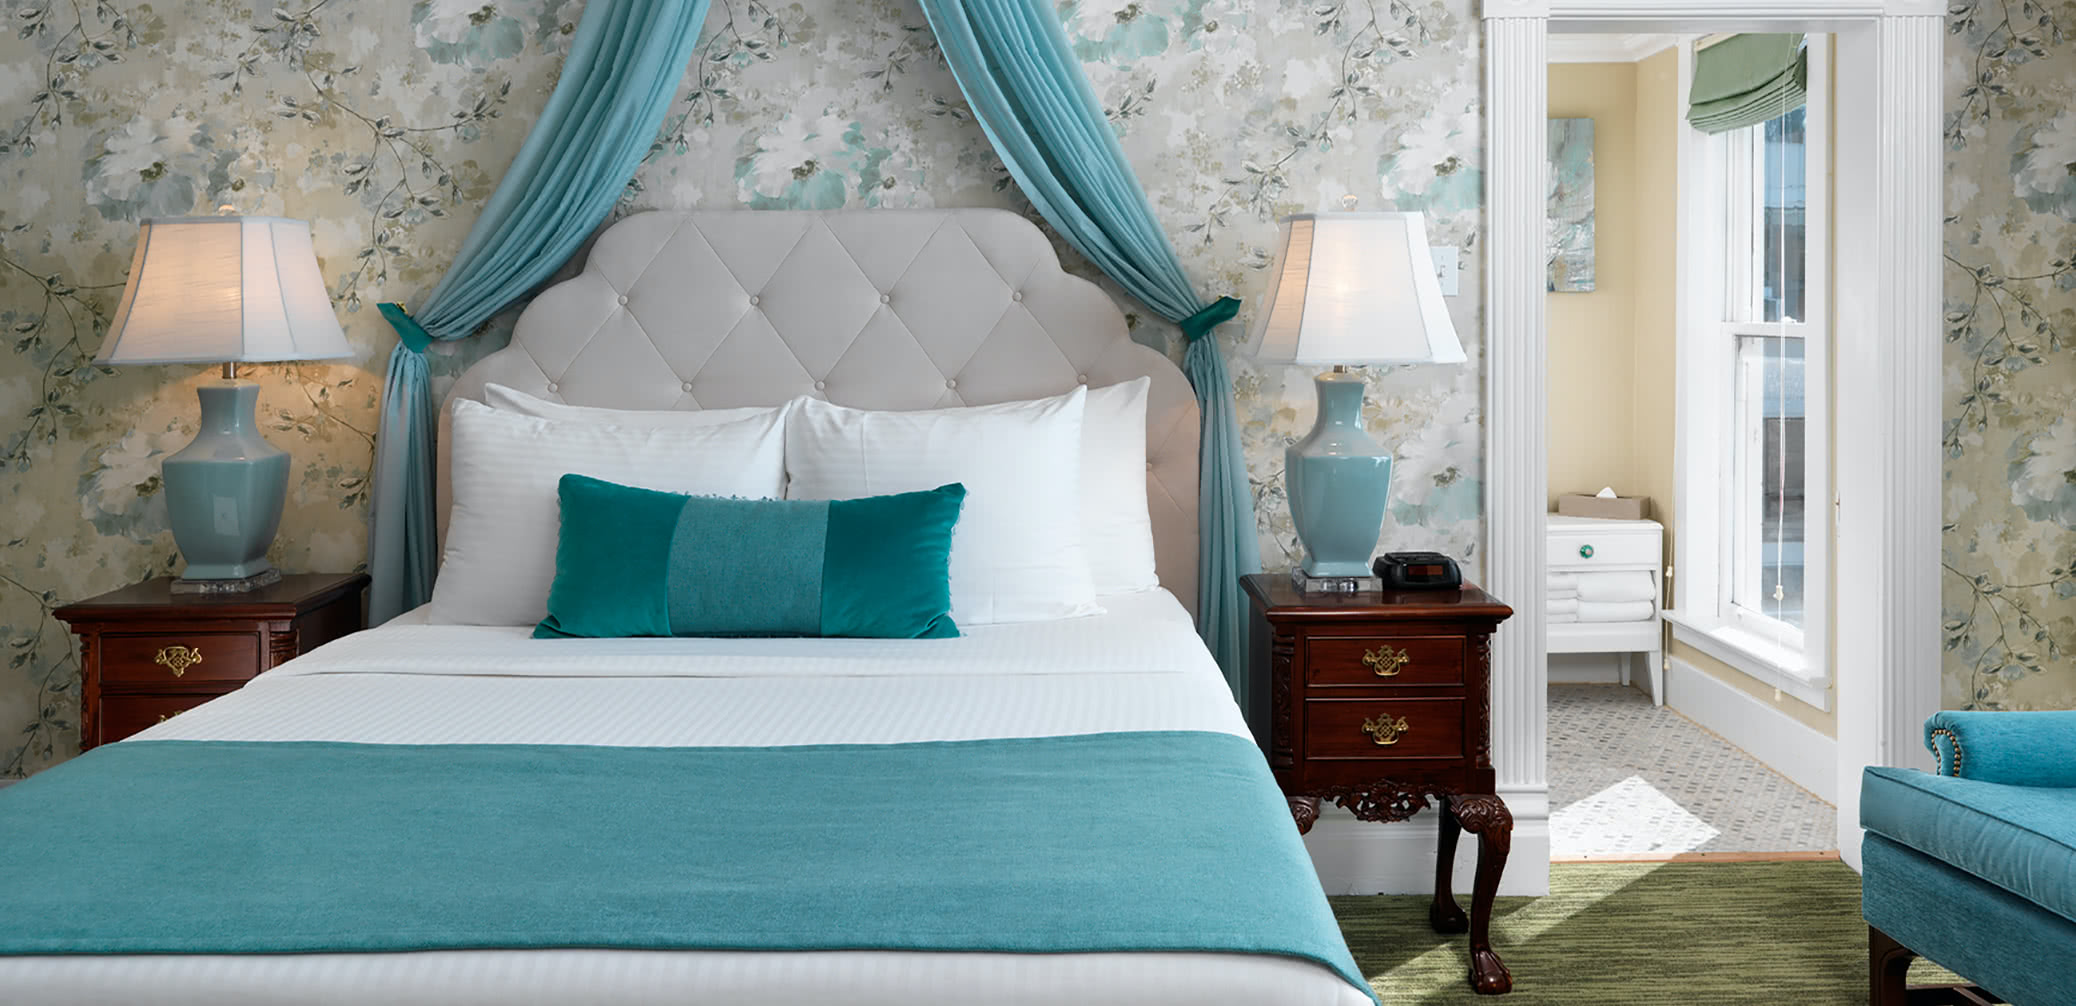 Top 10 Best Luxury Hotels In Victoria Bc Accommodation Tips Luxury Travel Diary